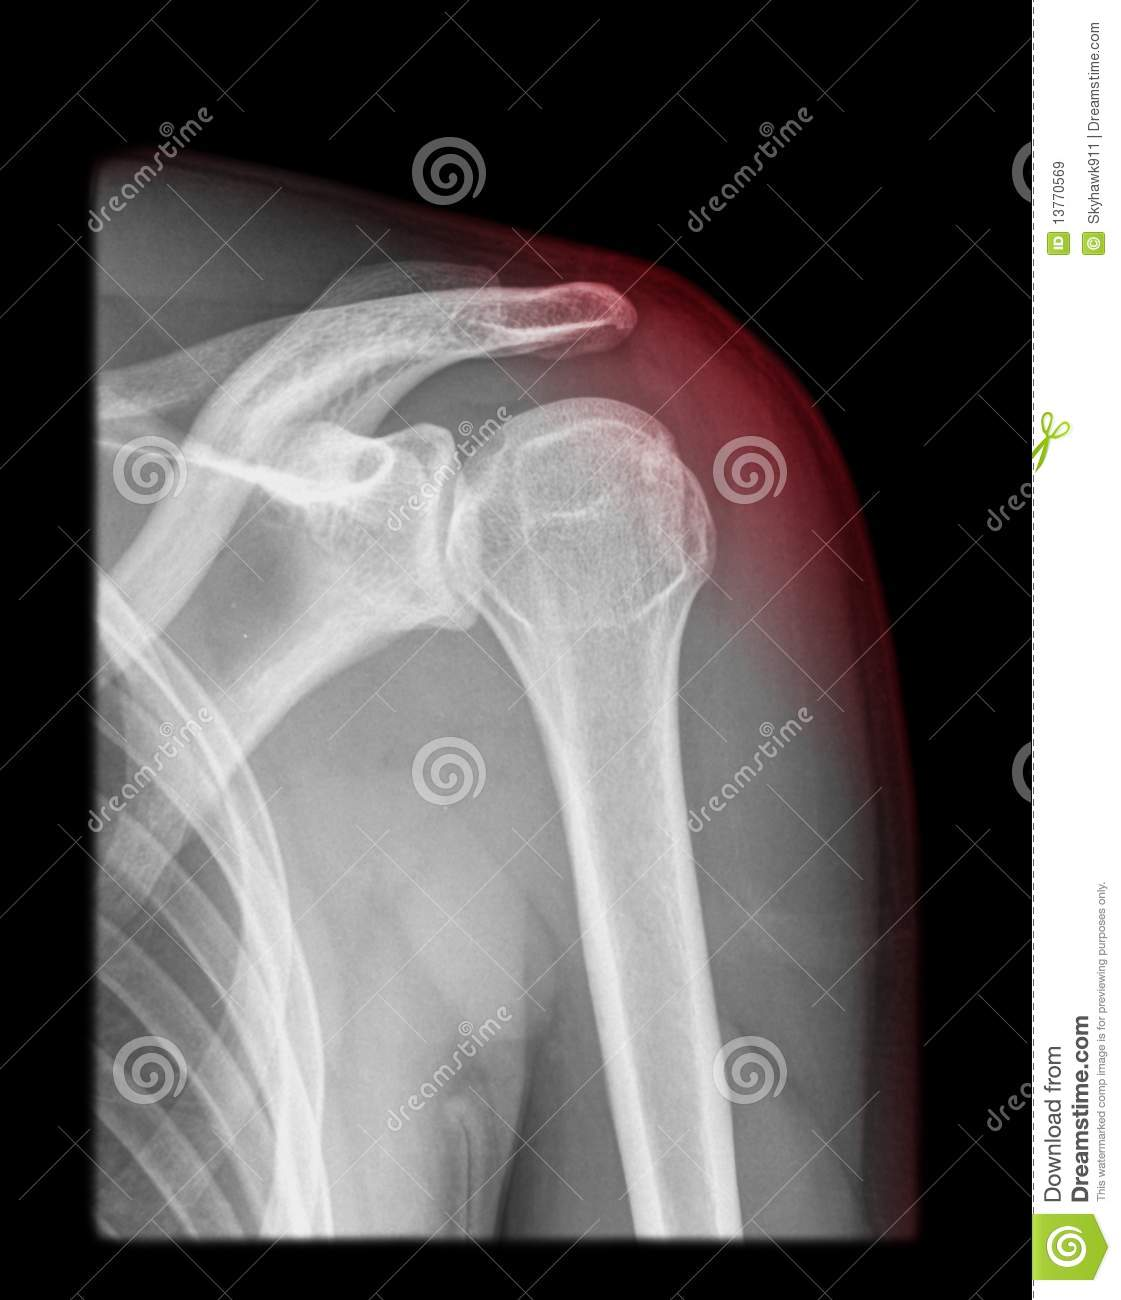 X Ray Radiation >> Shoulder pain stock image. Image of people, black, lung ...